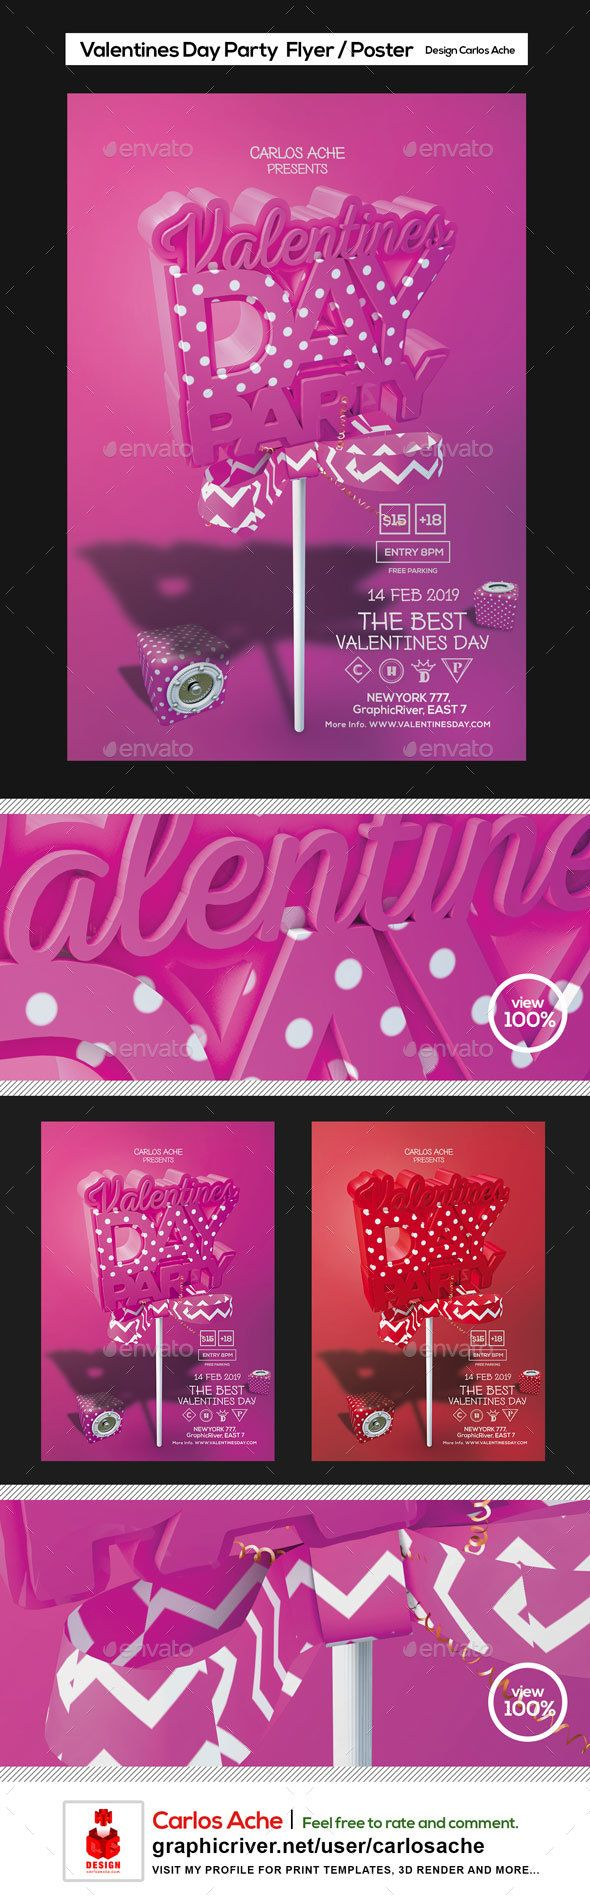 Valentines Day Party Flyer and Poster Template